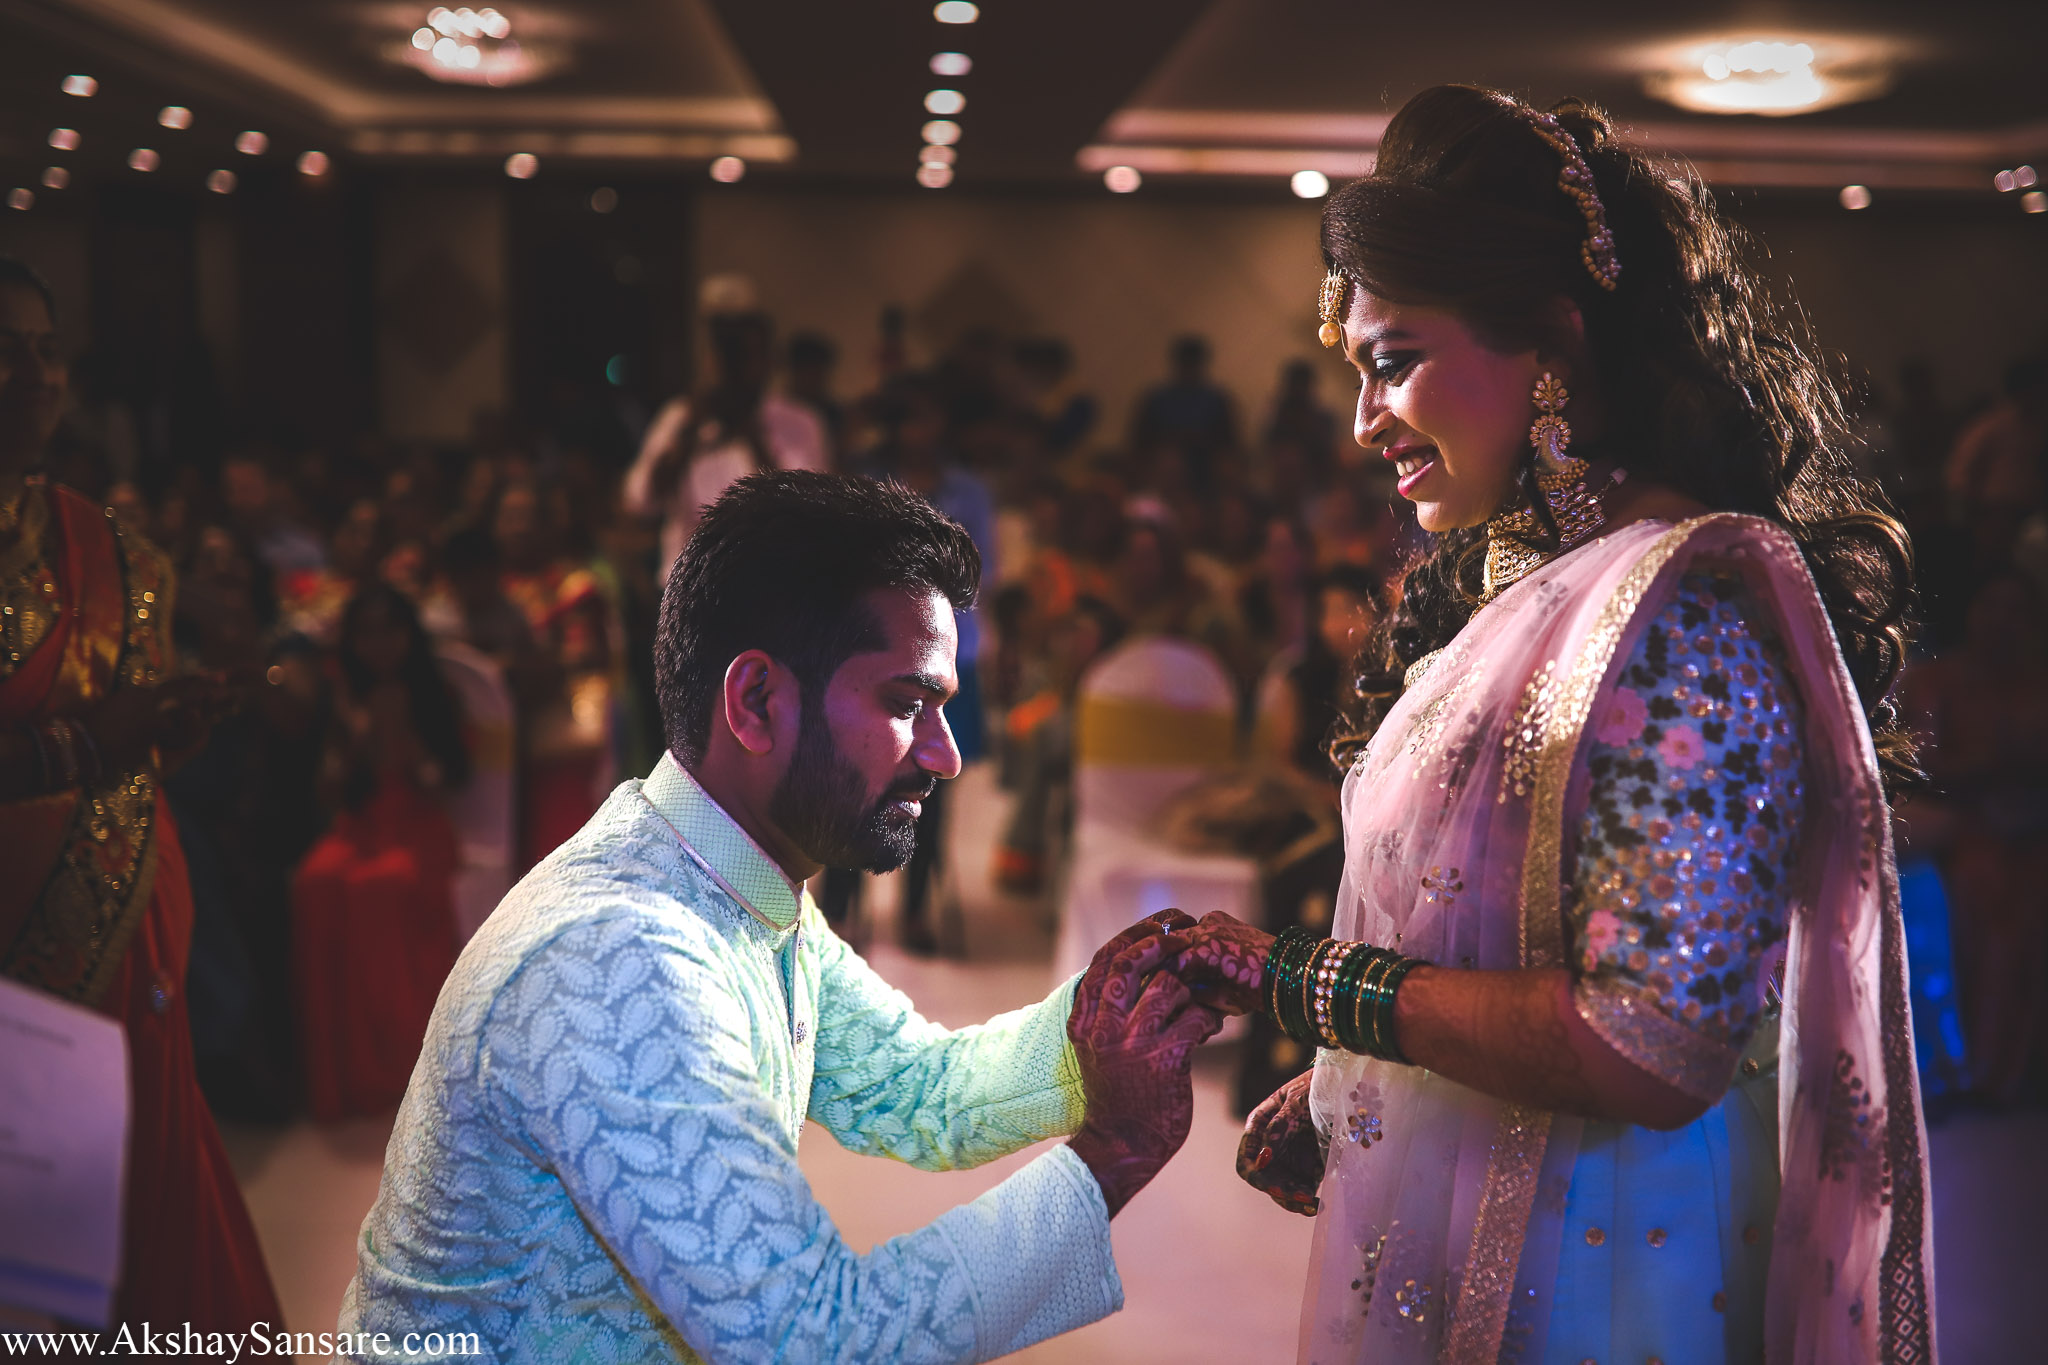 Ajay & Devika Akshay Sansare Photography Best Candid wedding photographer in mumbai india35.jpg